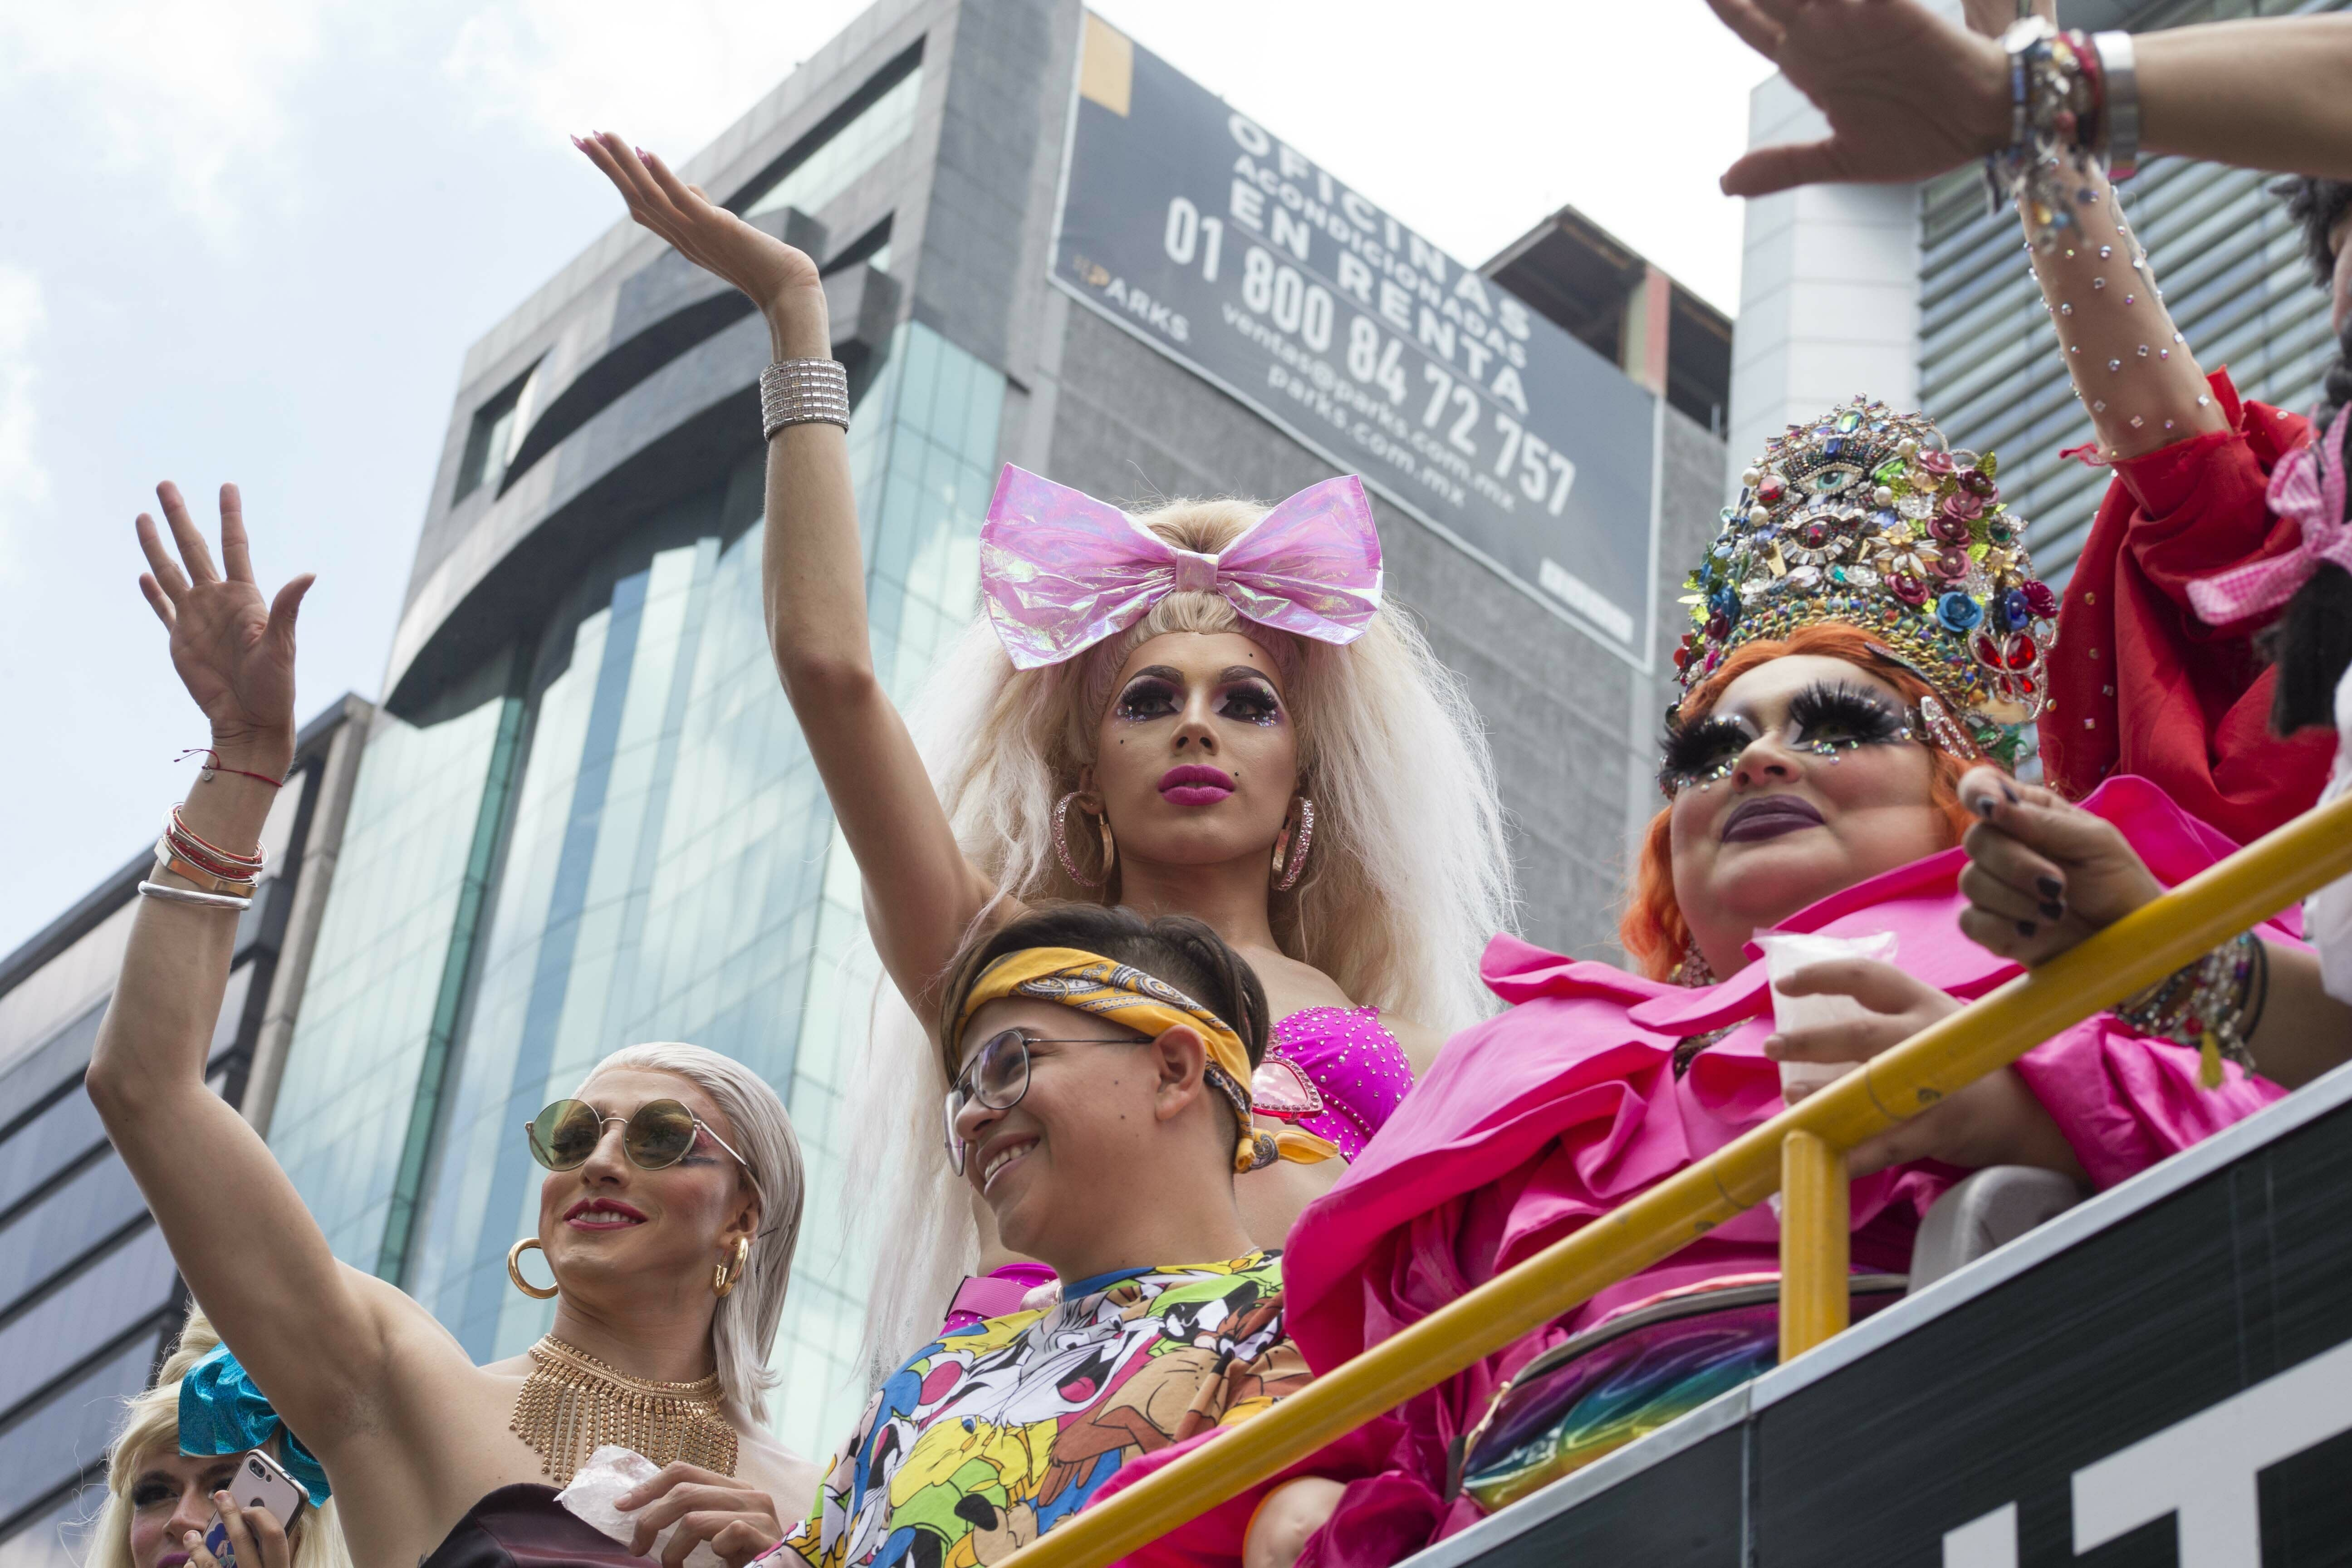 QnA VBage Tens of thousands join gay pride parades around the world